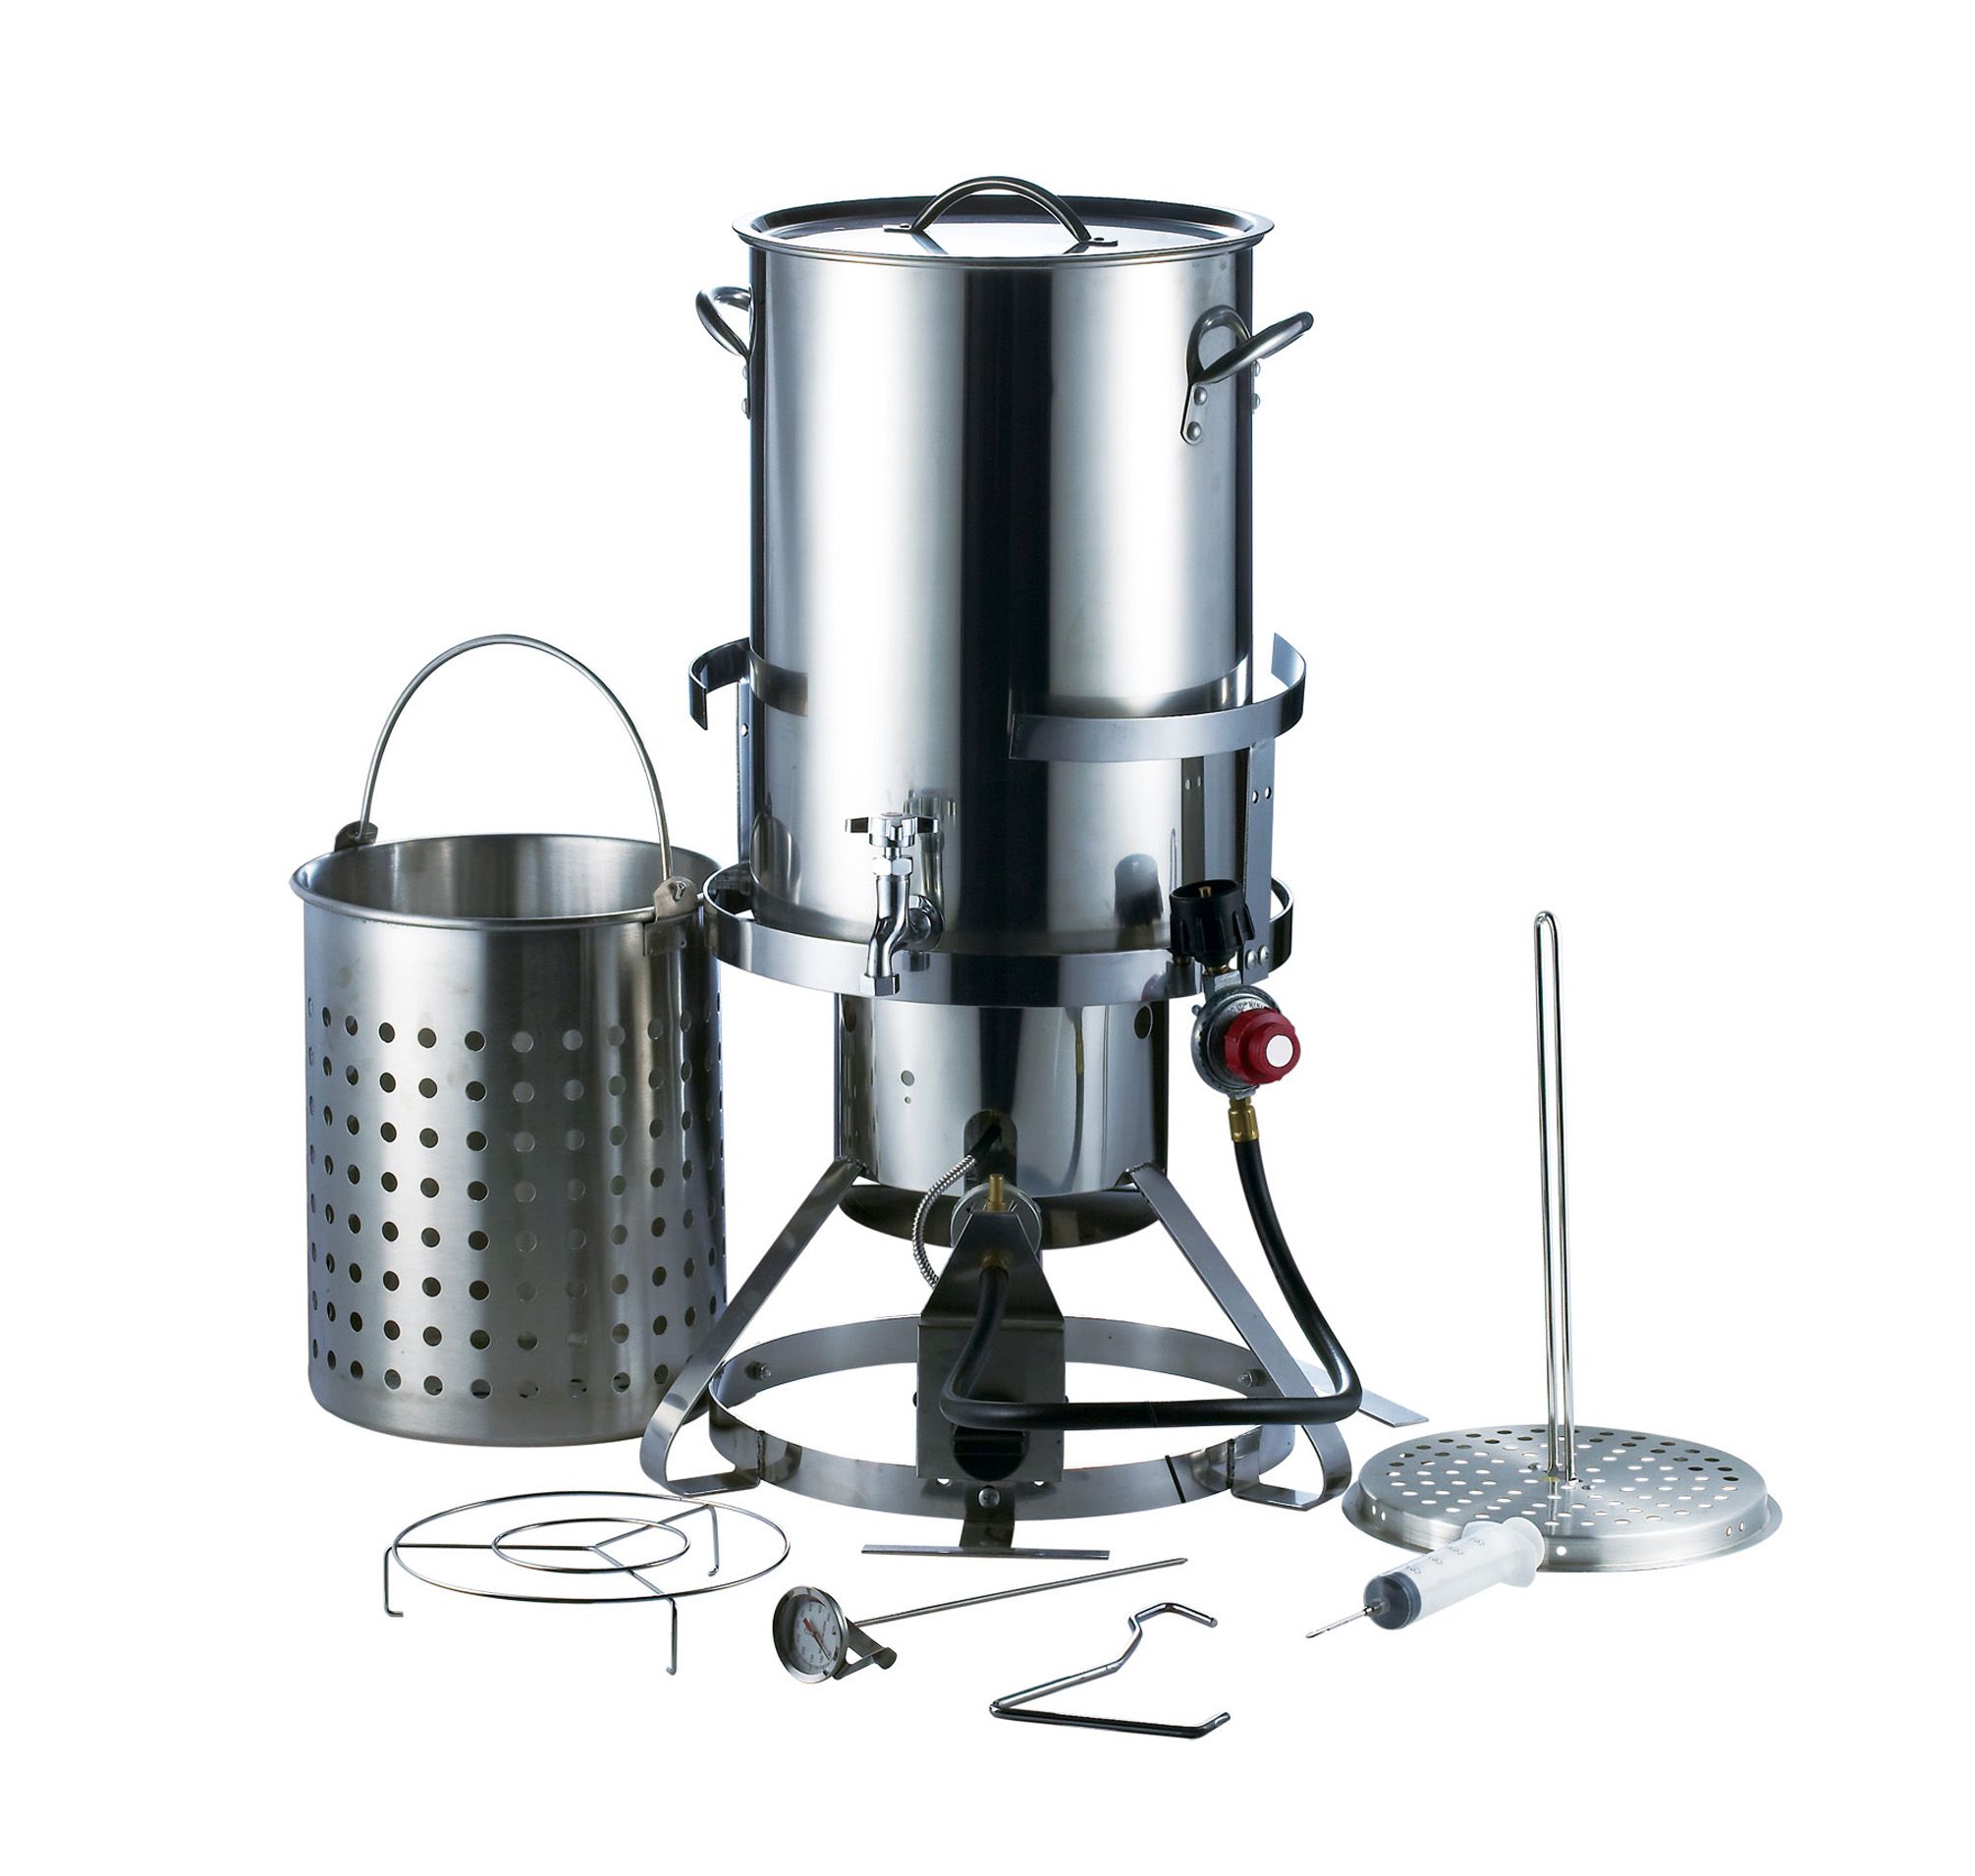 30QT. Stainless Steel Turkey Fryer Set